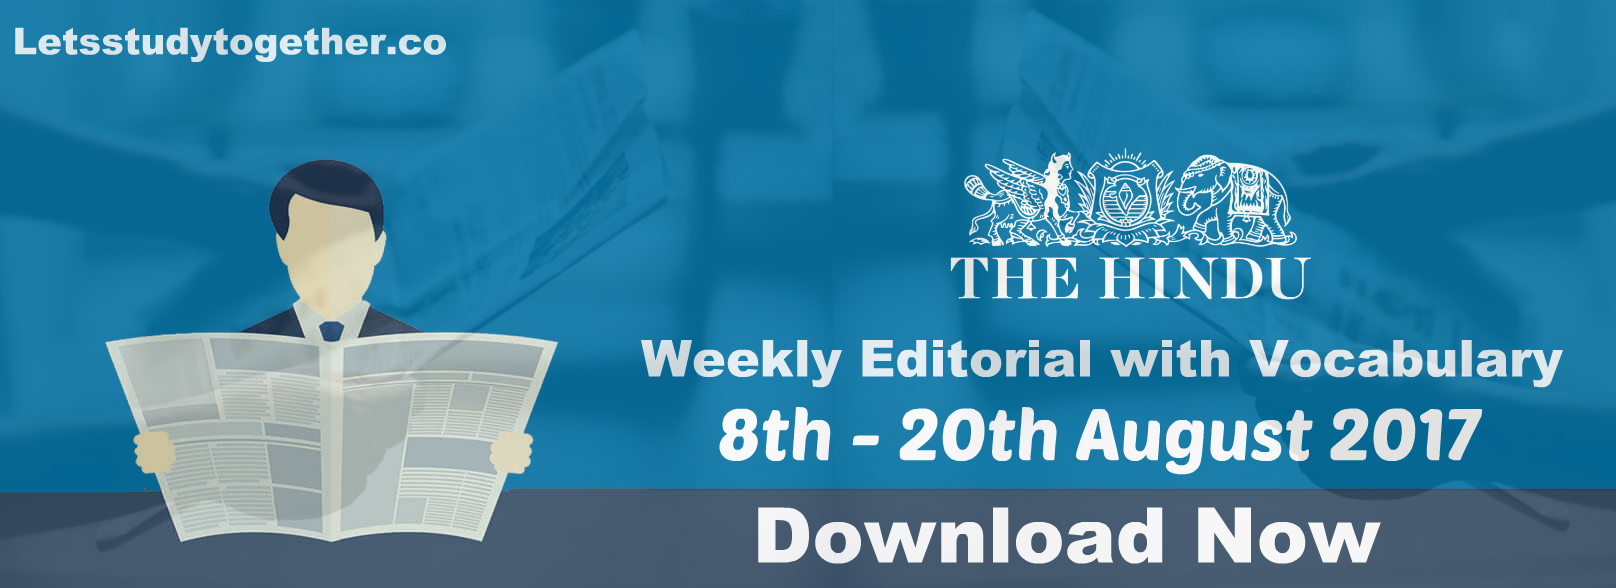 The hindu editorial with vocabulary weekly pdf 8th 20th august the hindu editorial with vocabulary weekly pdf fandeluxe Choice Image